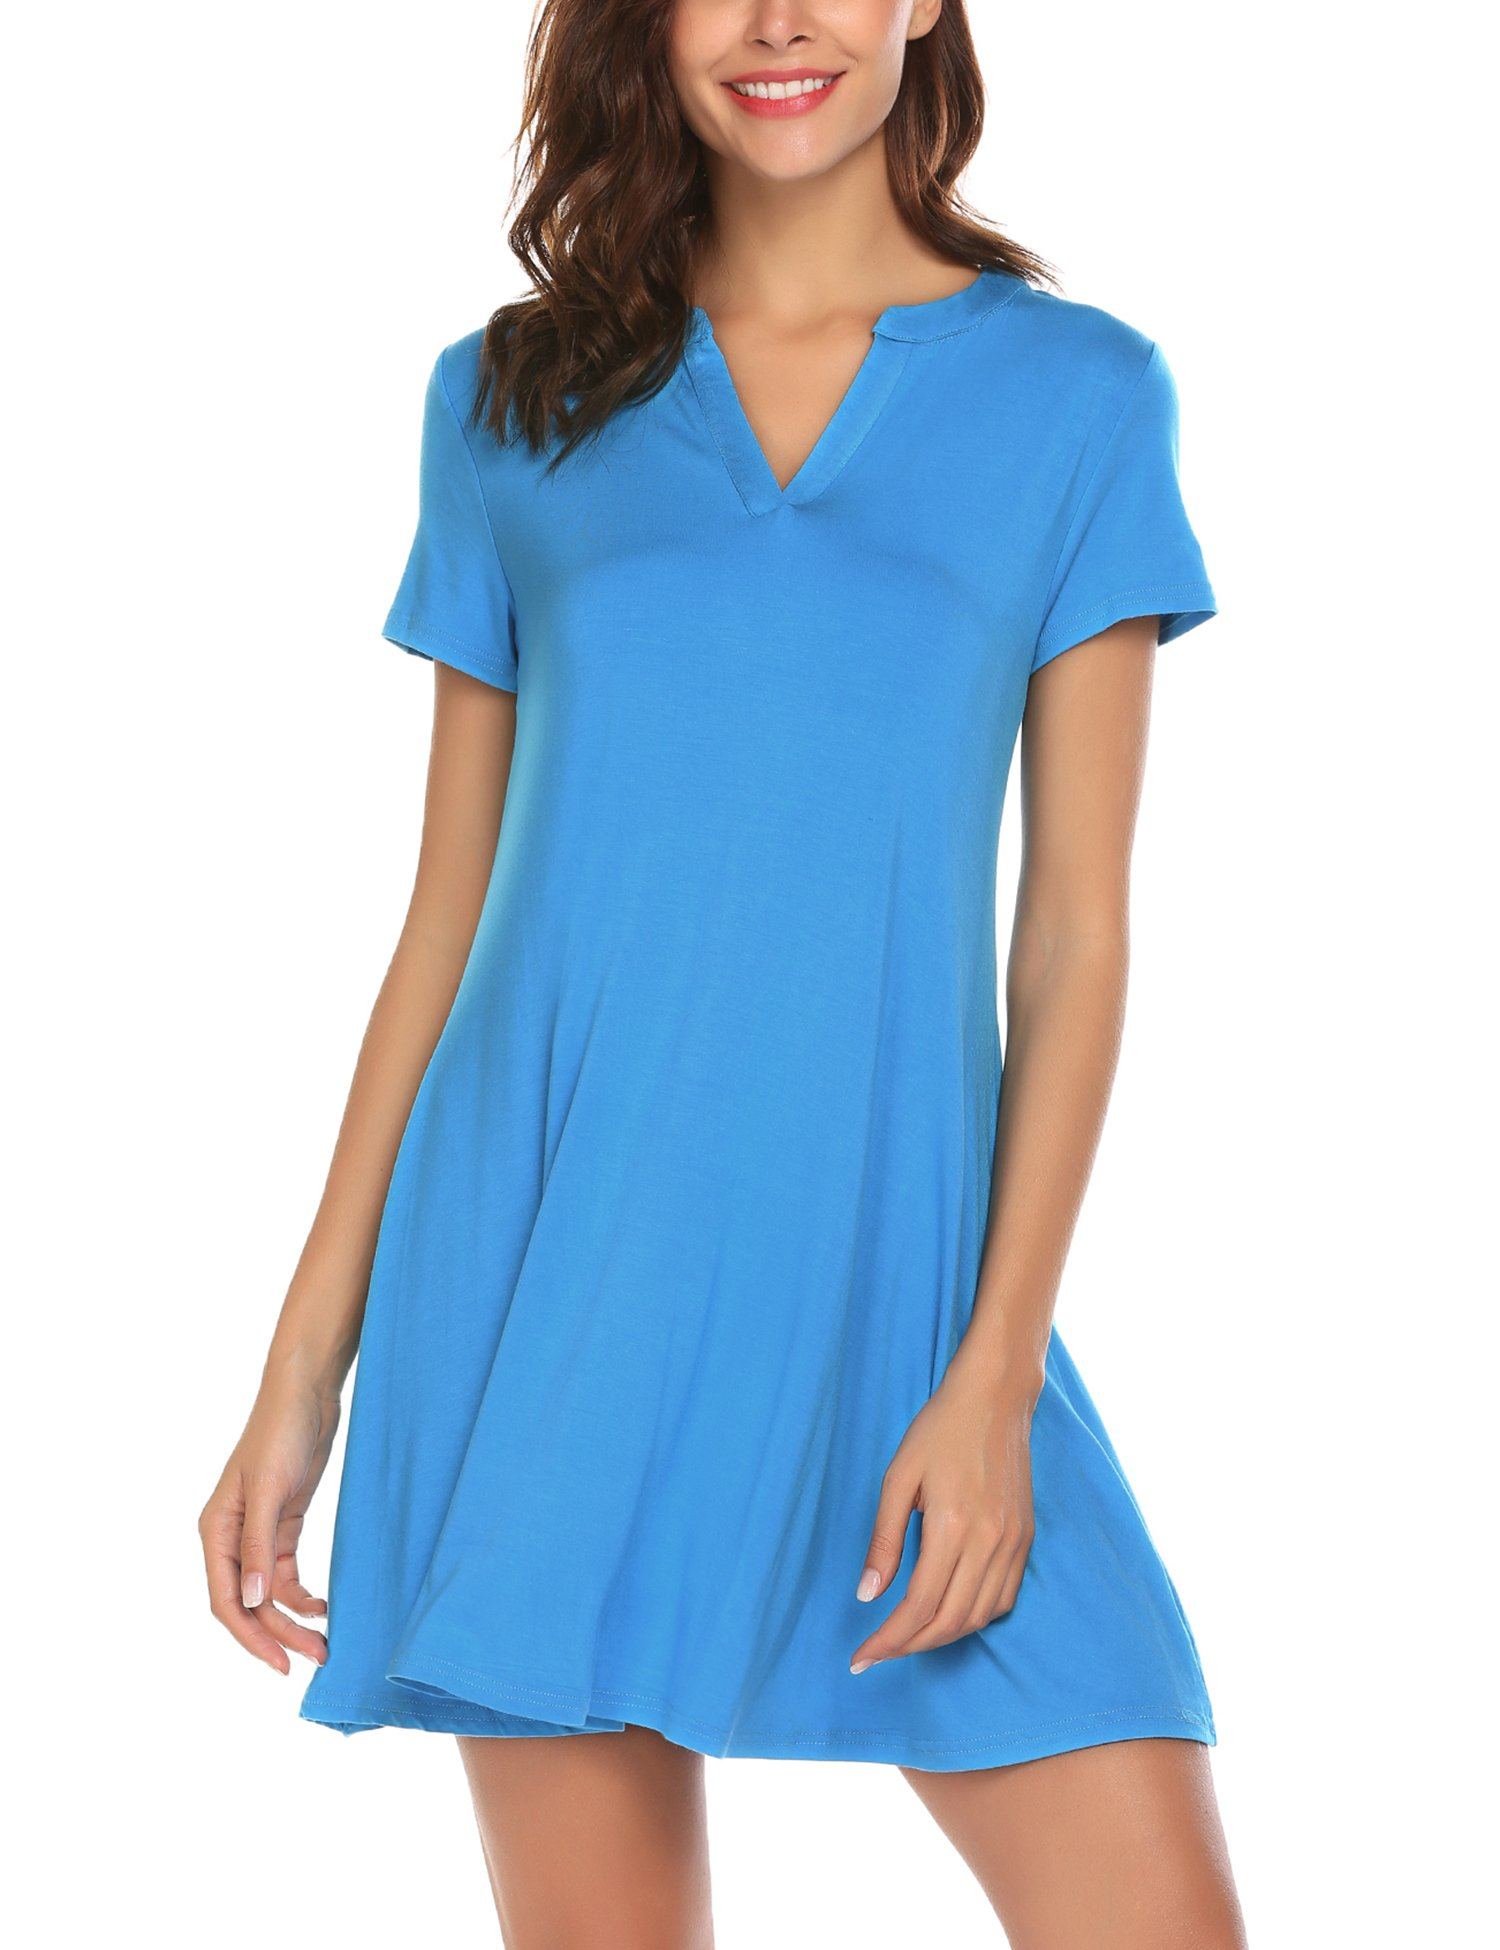 Available at Amazon: BURALDY Women's Casual Short Sleeve Simple T-Shirt Loose Fit Tunic Dress